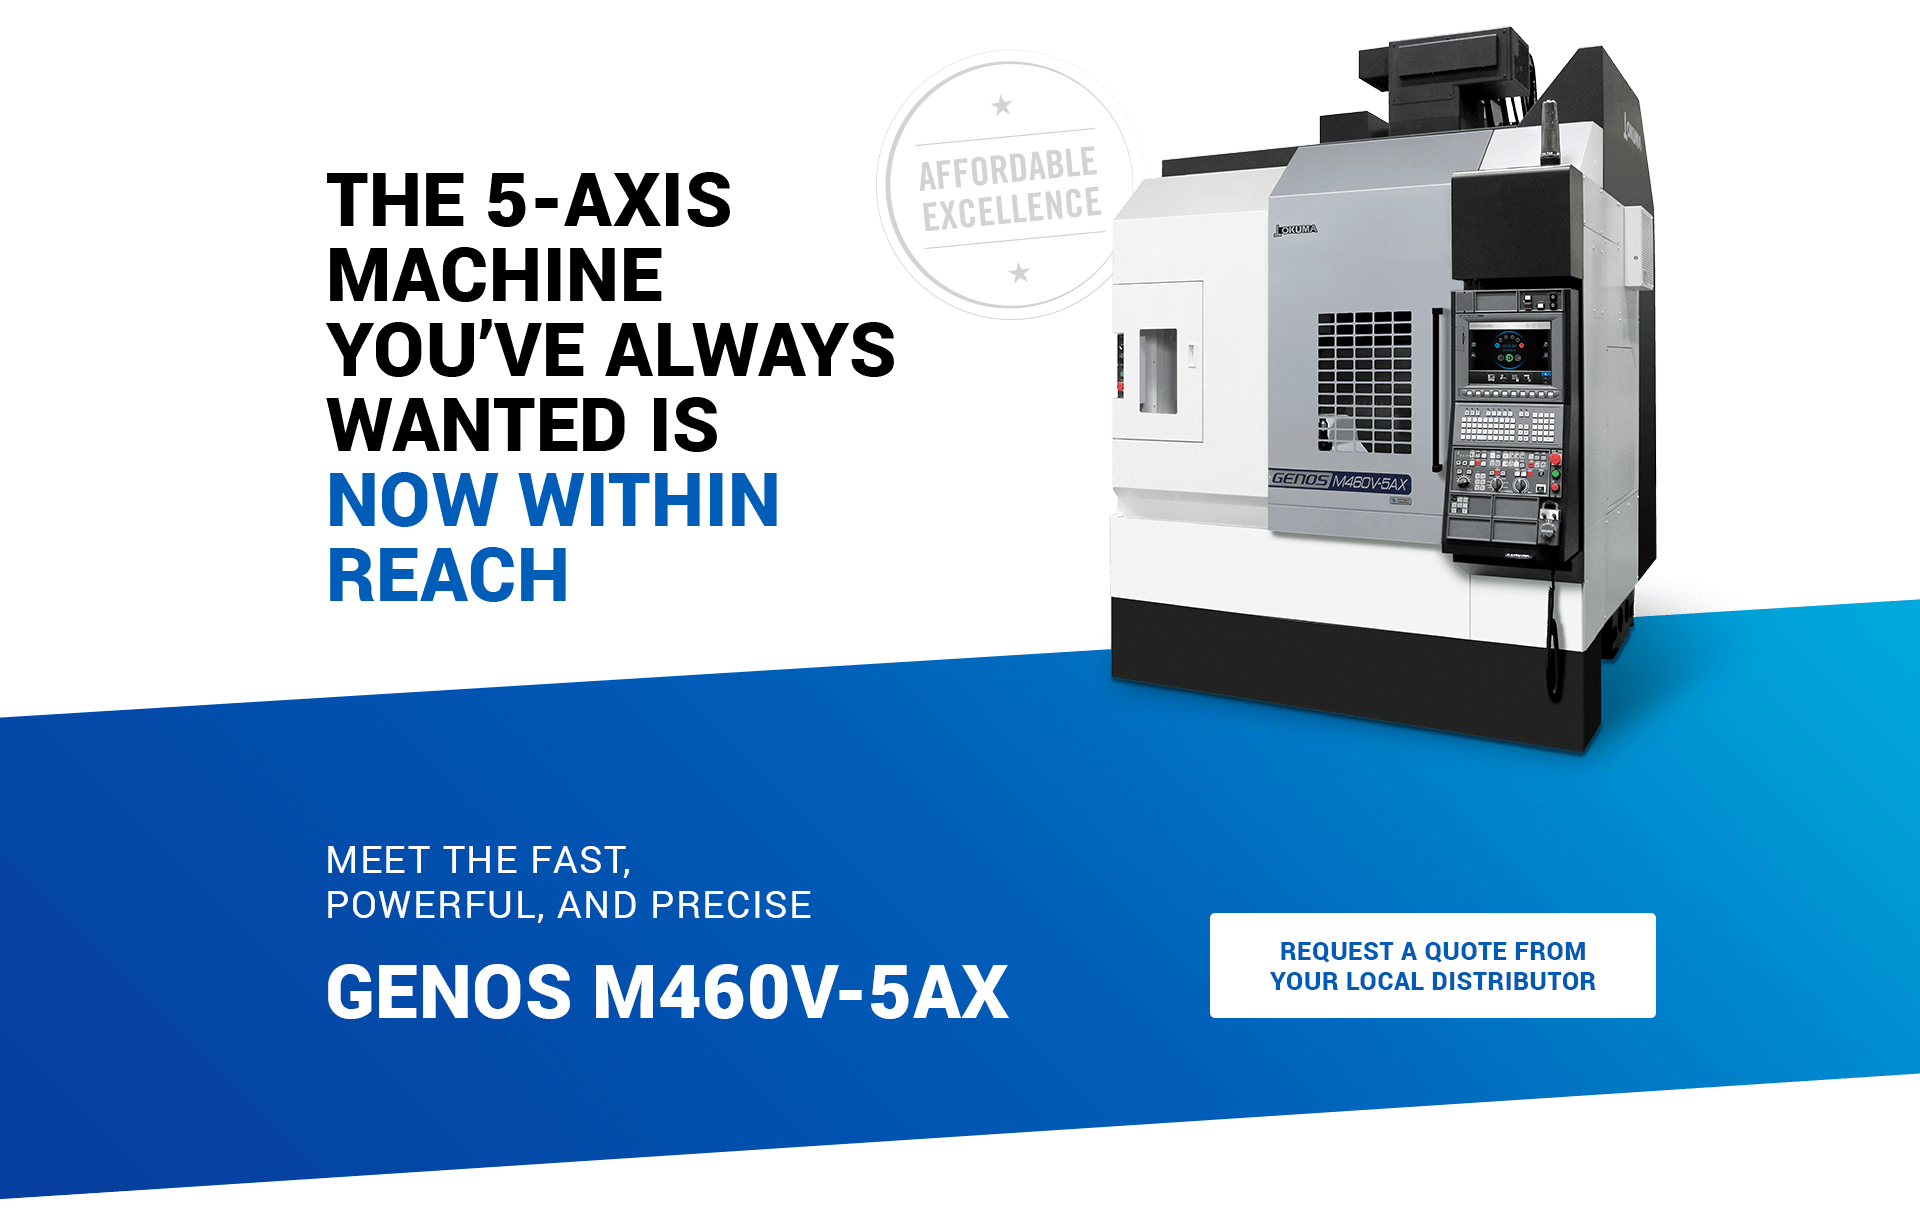 THE 5-AXIS MACHINE YOU'VE ALWAYS WANTED IS NOW WITHIN REACH